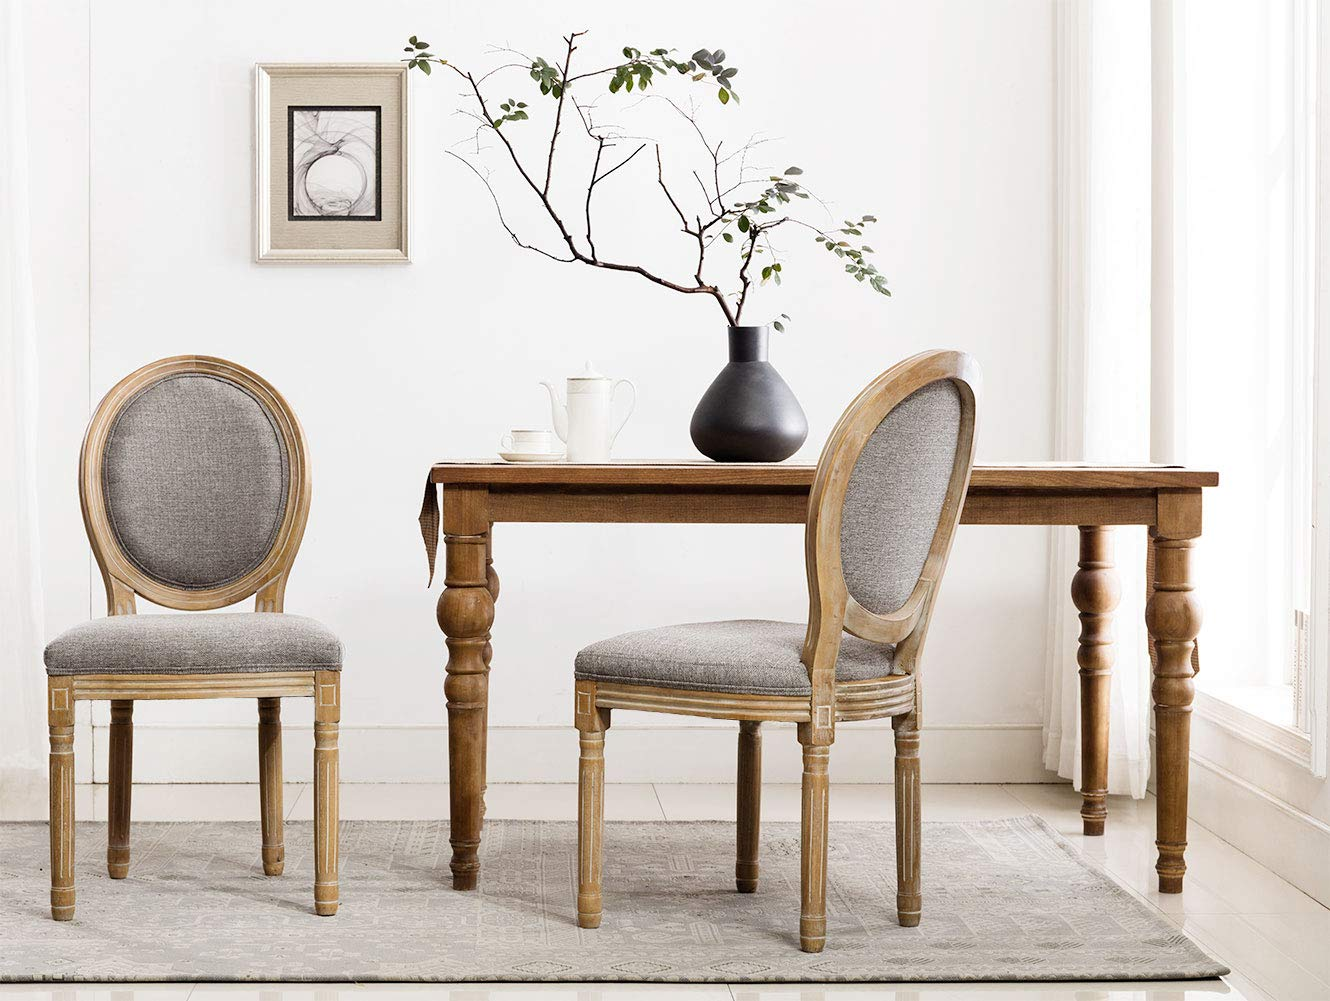 French Dining Chairs, Distressed Elegant Tufted Kitchen Chairs with Carving Wood Legs & Round Back - Set of 2 - Gray by Chairus